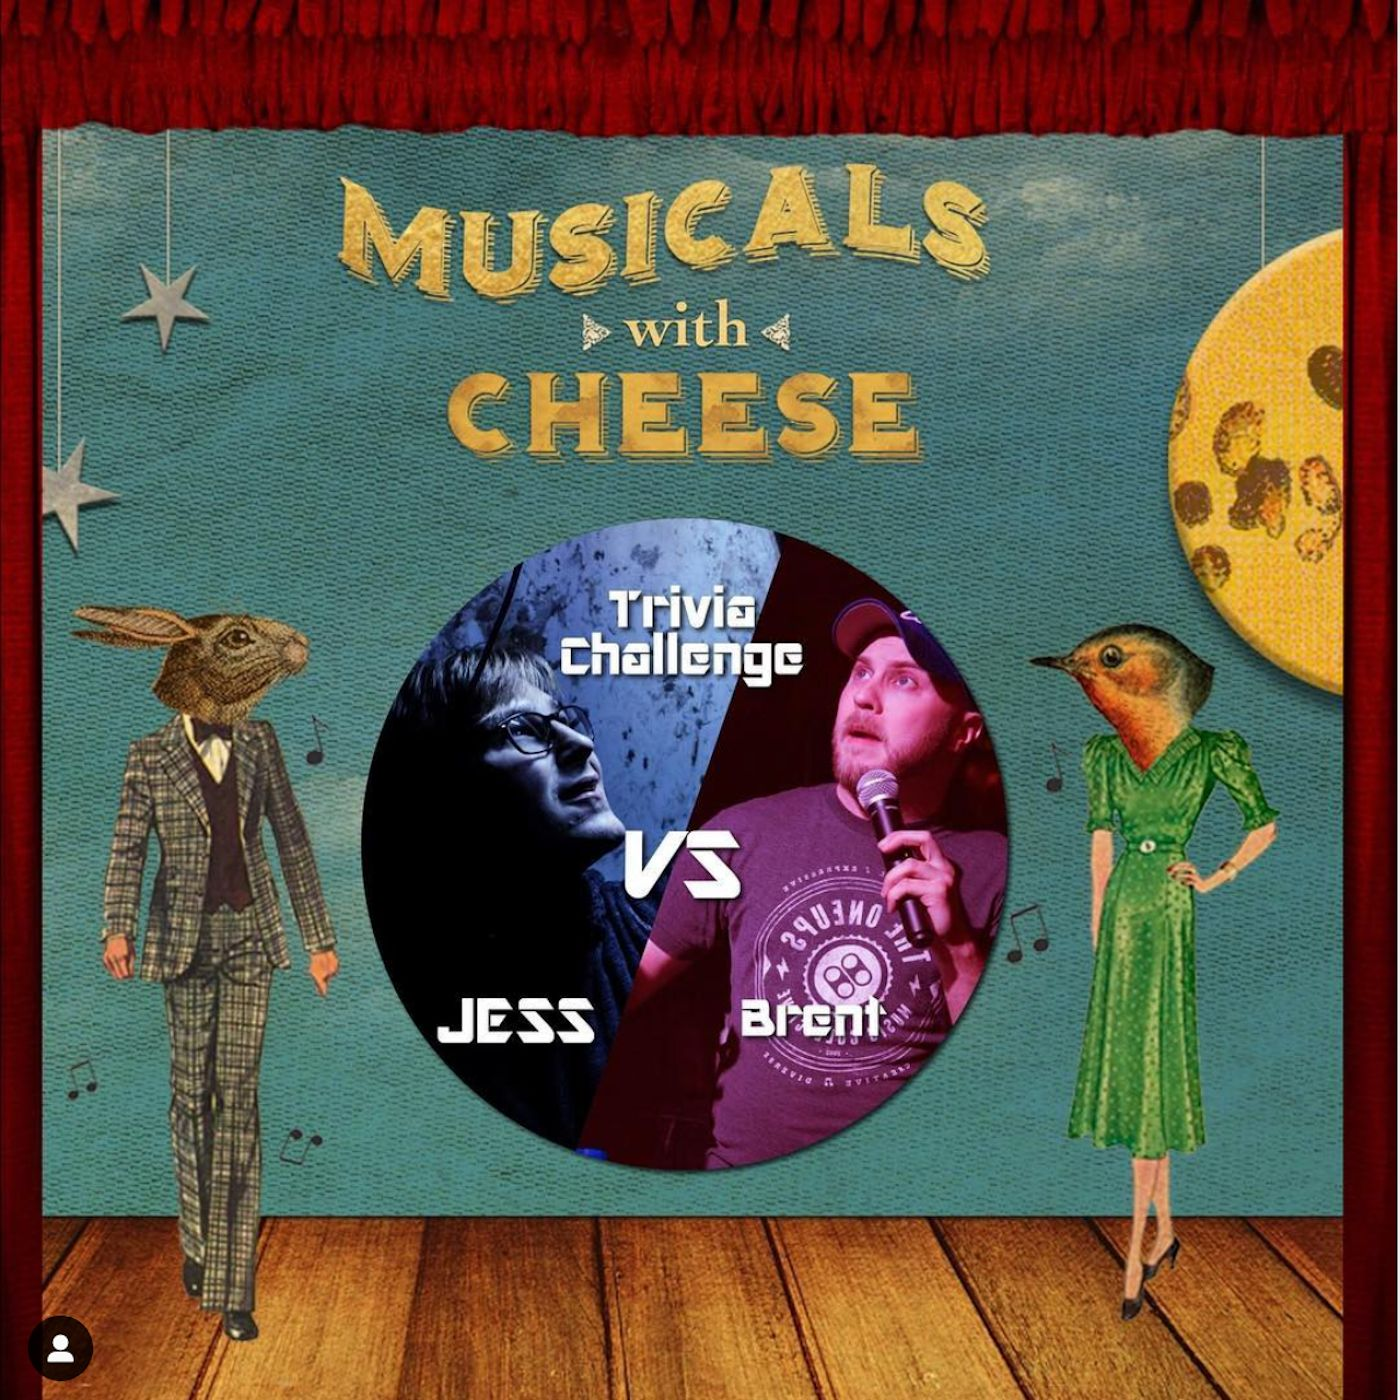 Musicals With Cheese #12 – Trivia Challenge (Jess V. Brent Black aka Brentalfloss)